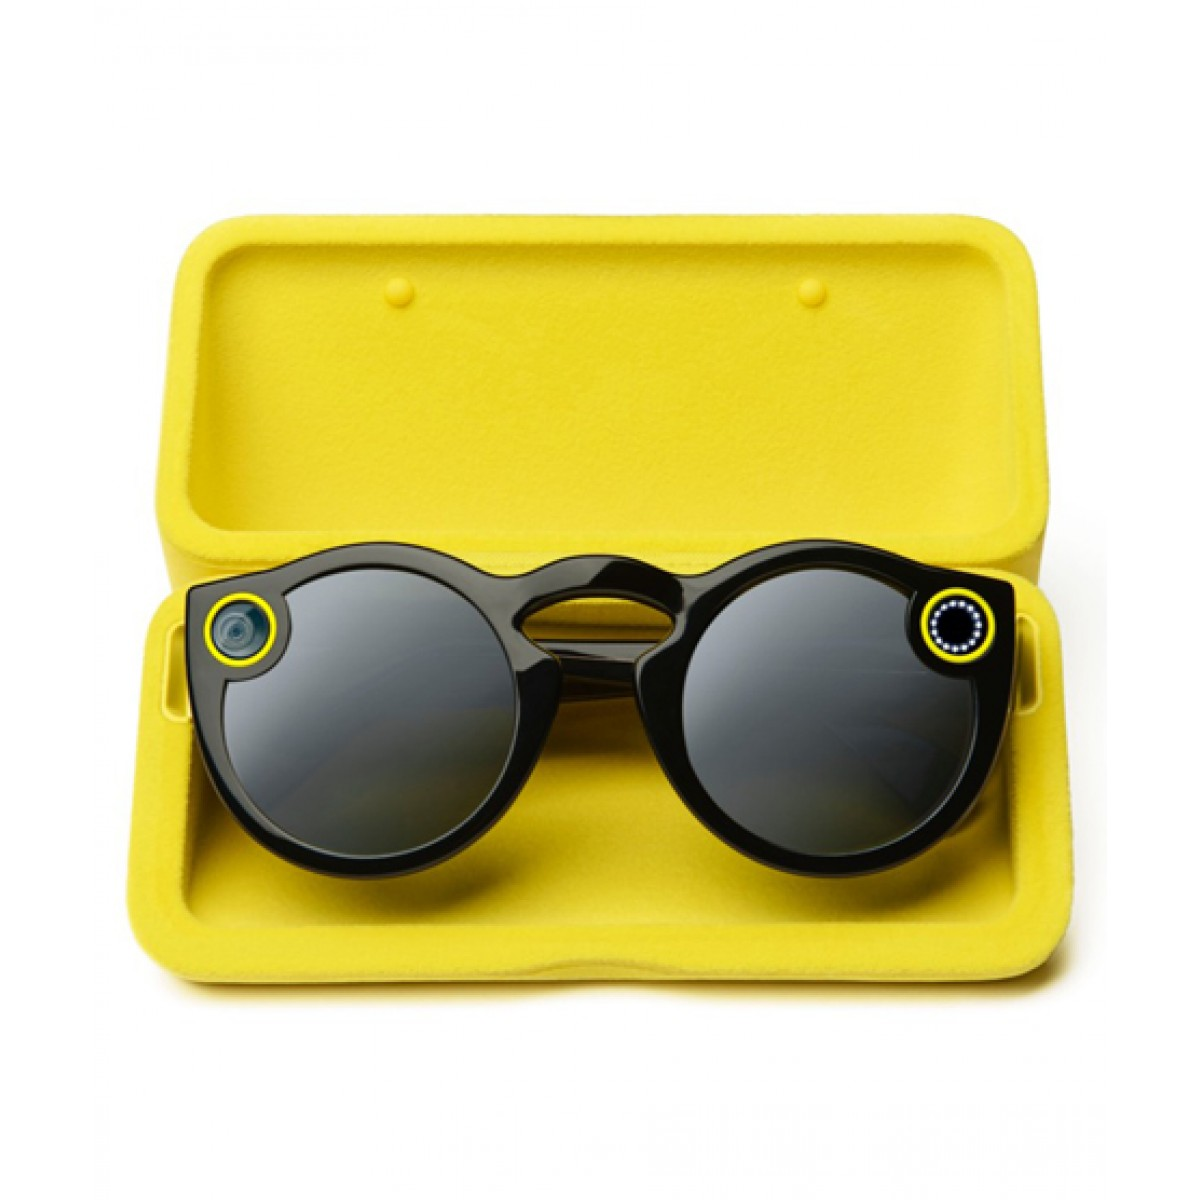 92179293a6fb Spectacles Glasses Just For Snapchat Price in Pakistan